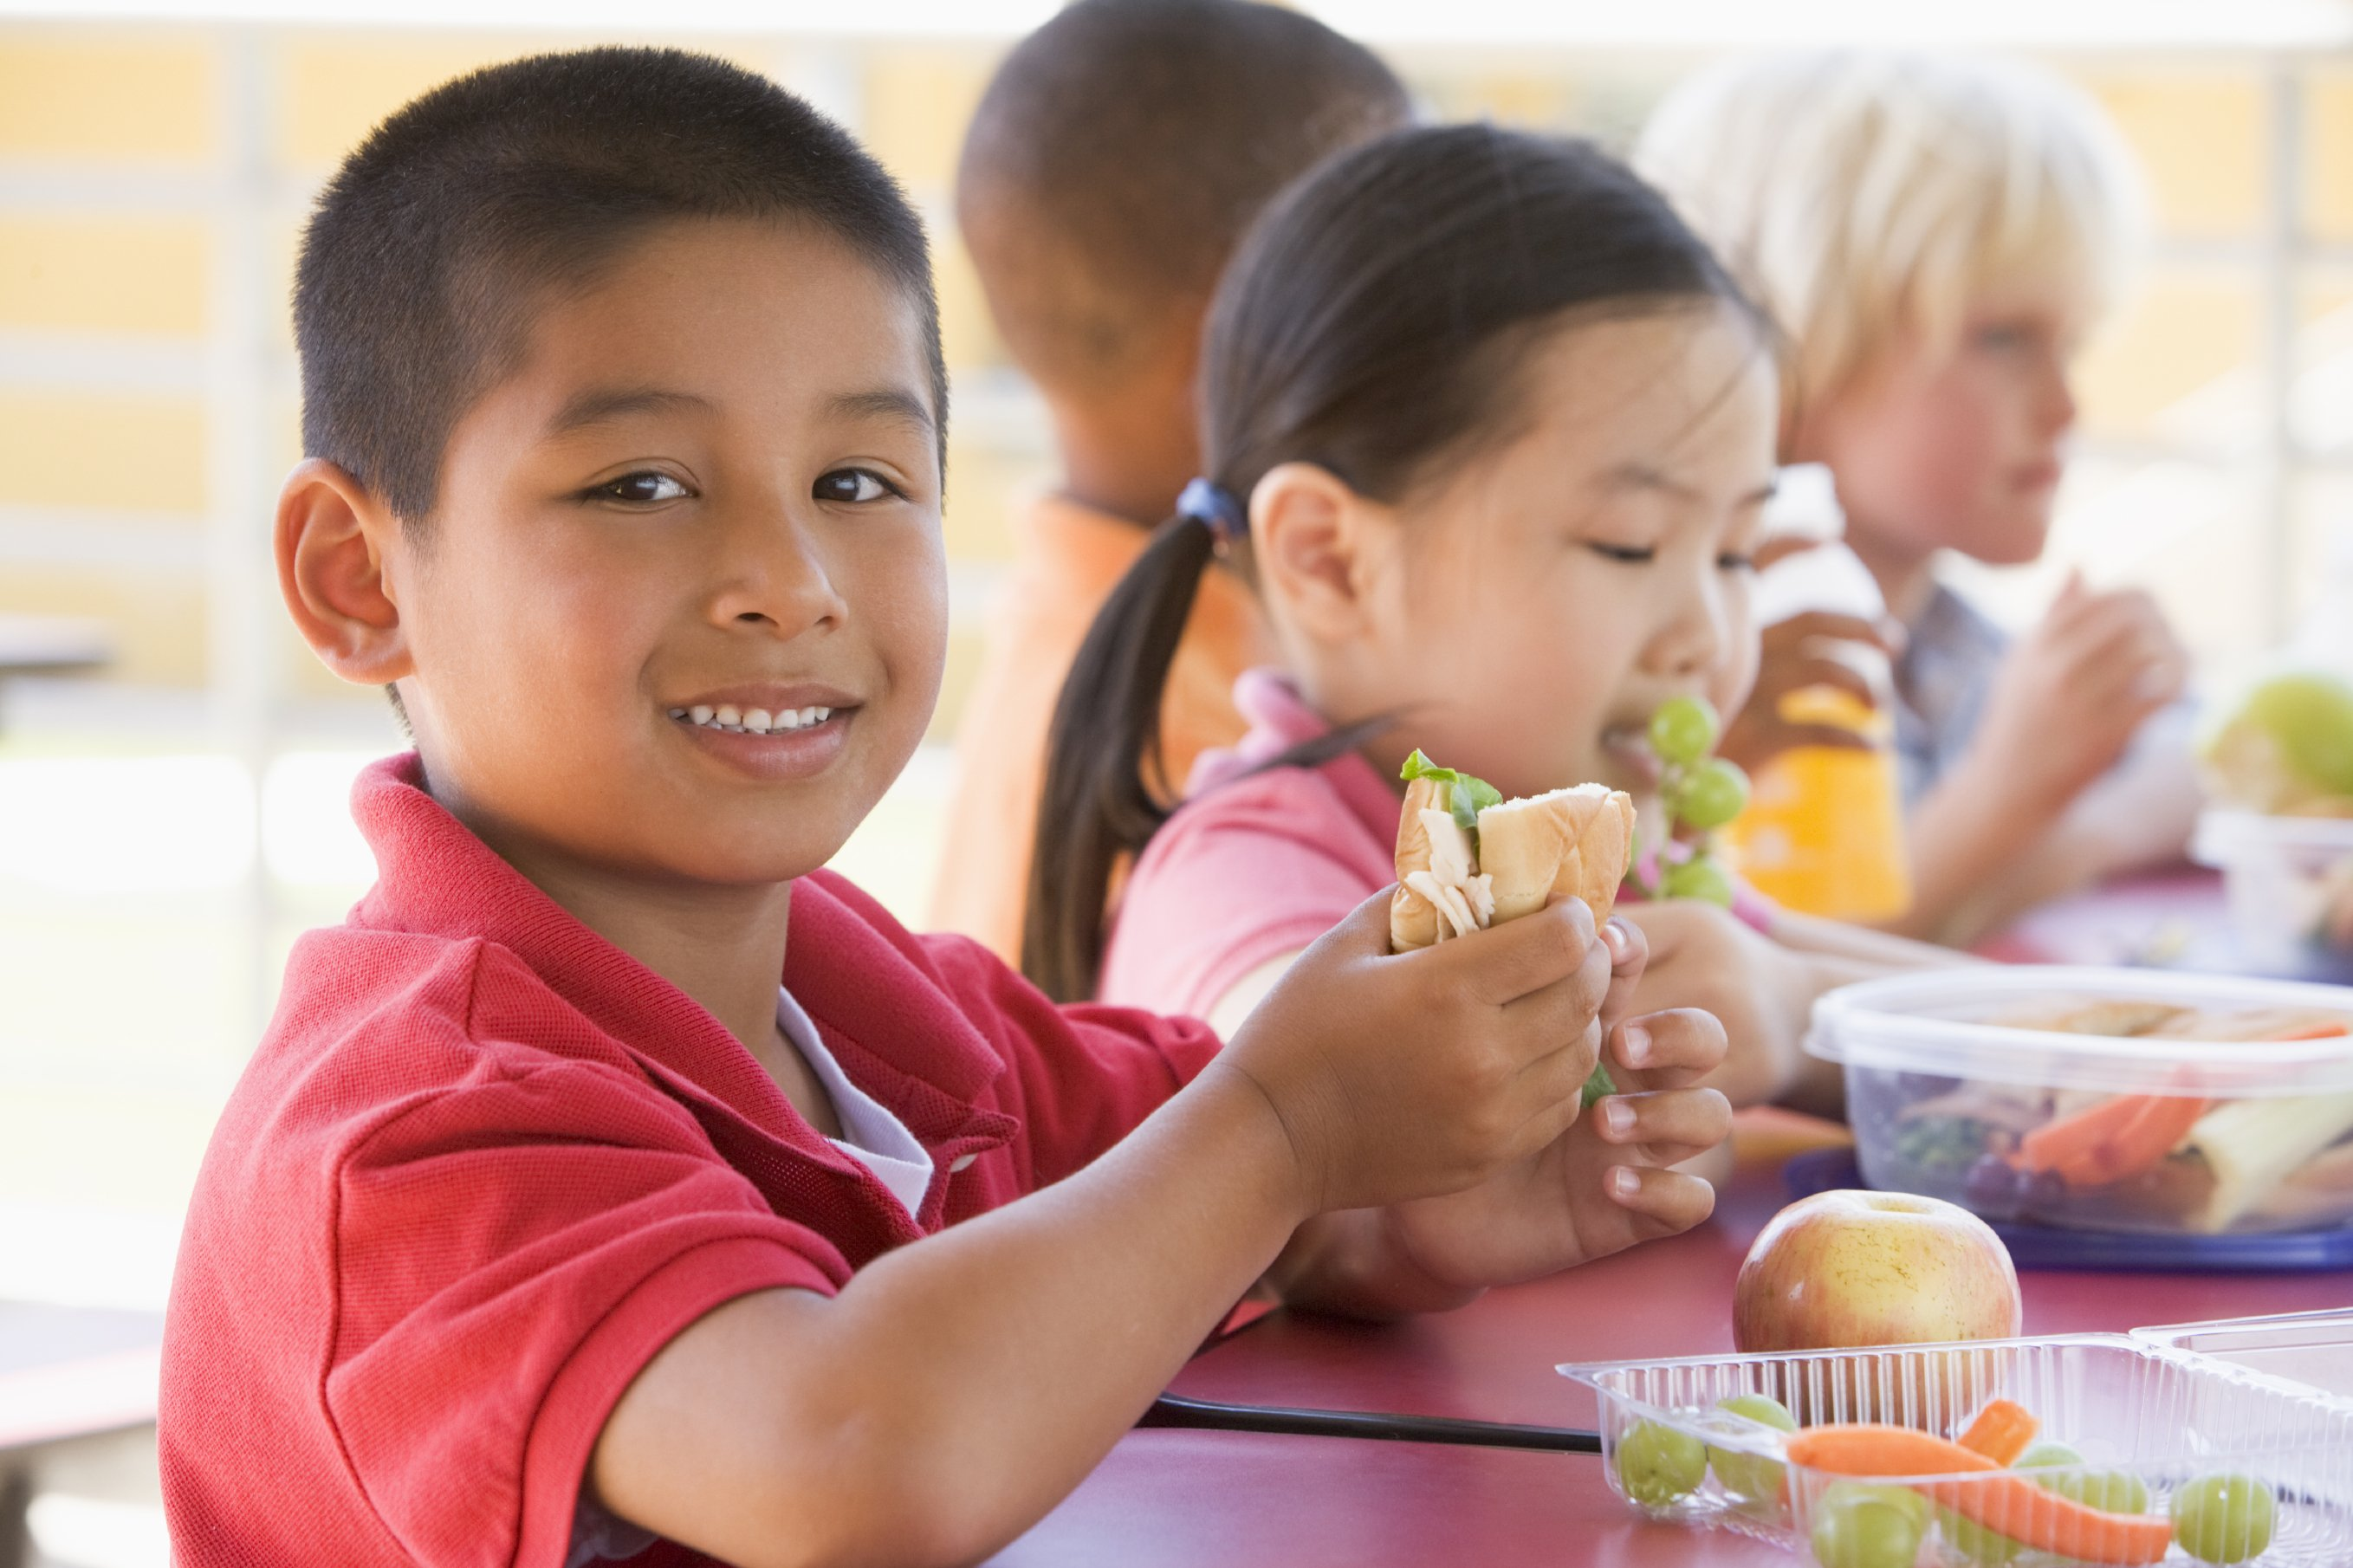 children eating during recess